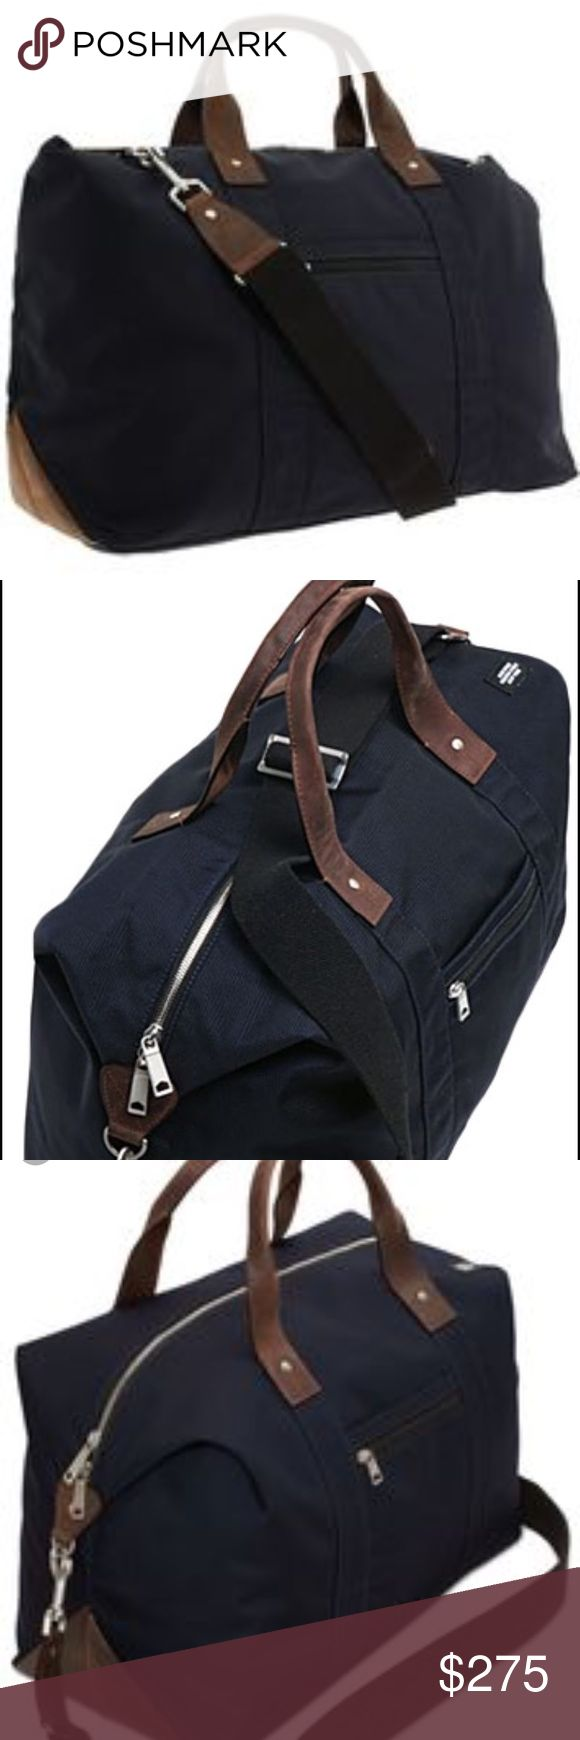 Jack Spade duffle bag Beautiful travel duffle bag by jack spade with leather straps. No damage originally $400 Jack Spade Bags Travel Bags